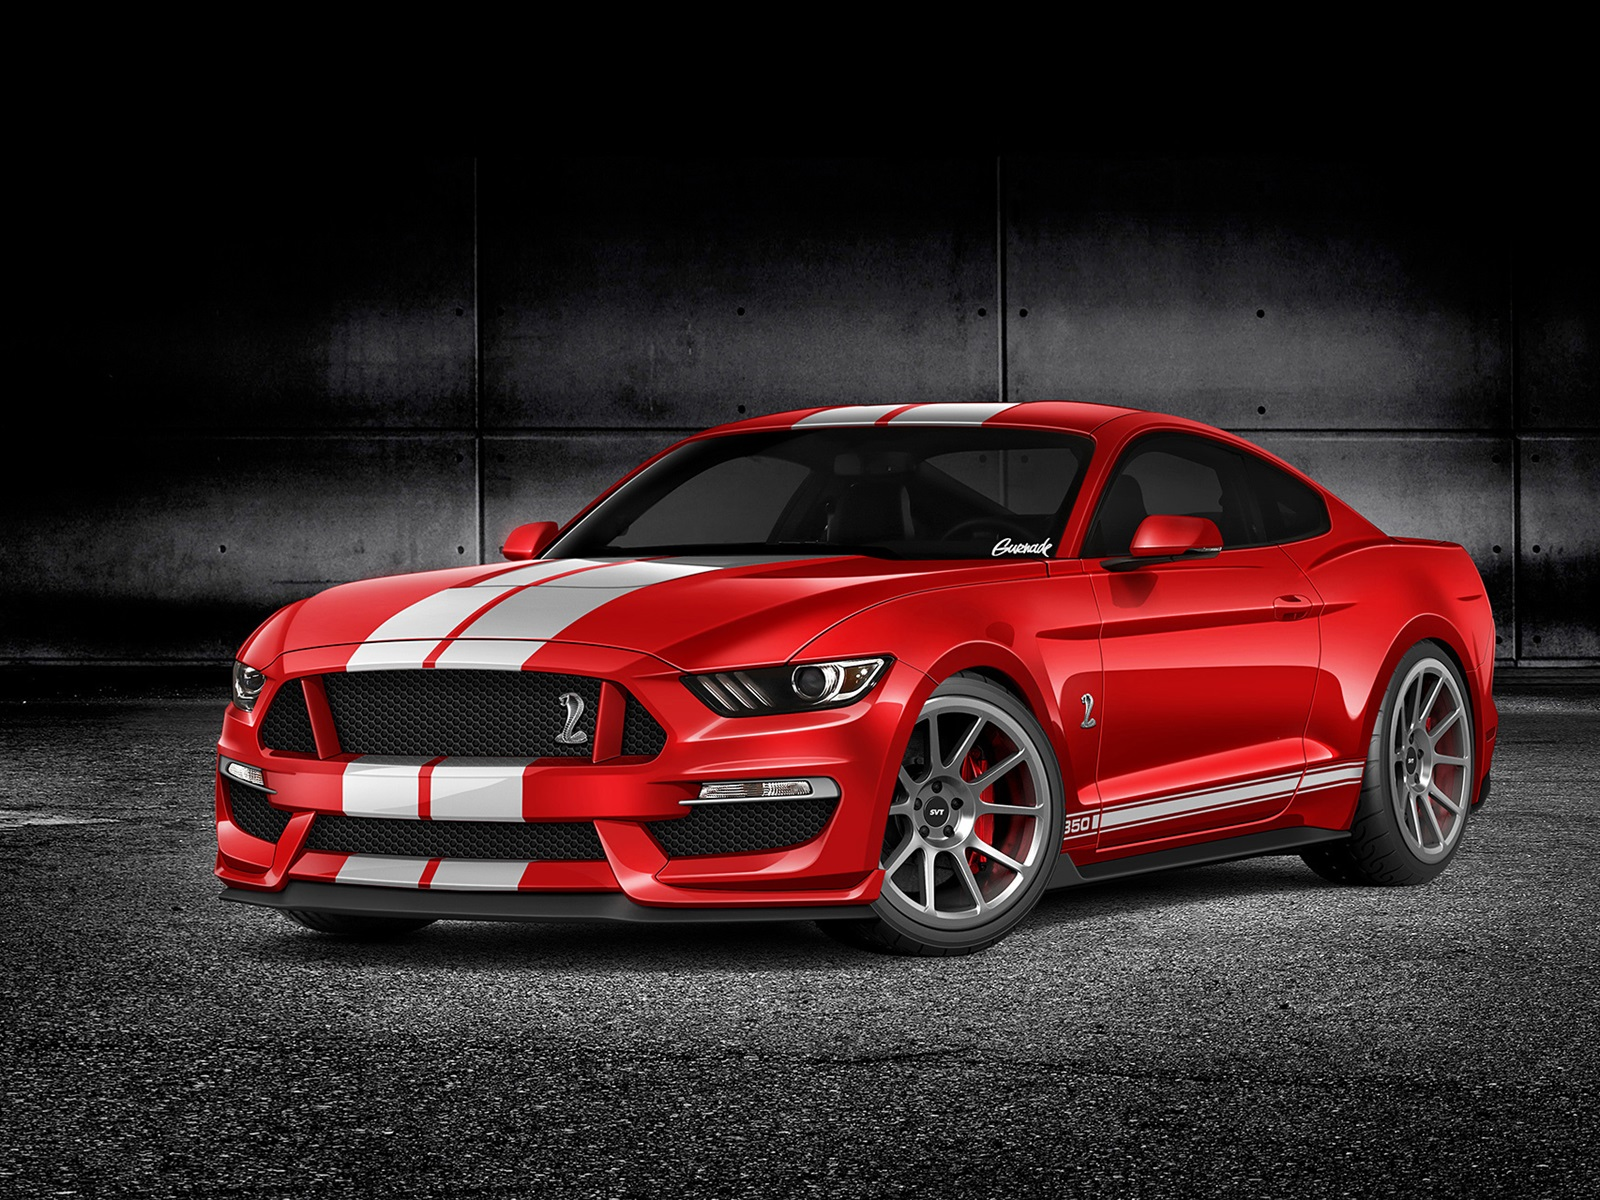 Wallpaper Ford Mustang Gt350 Red Car Front View 1920x1200 Hd Picture Image